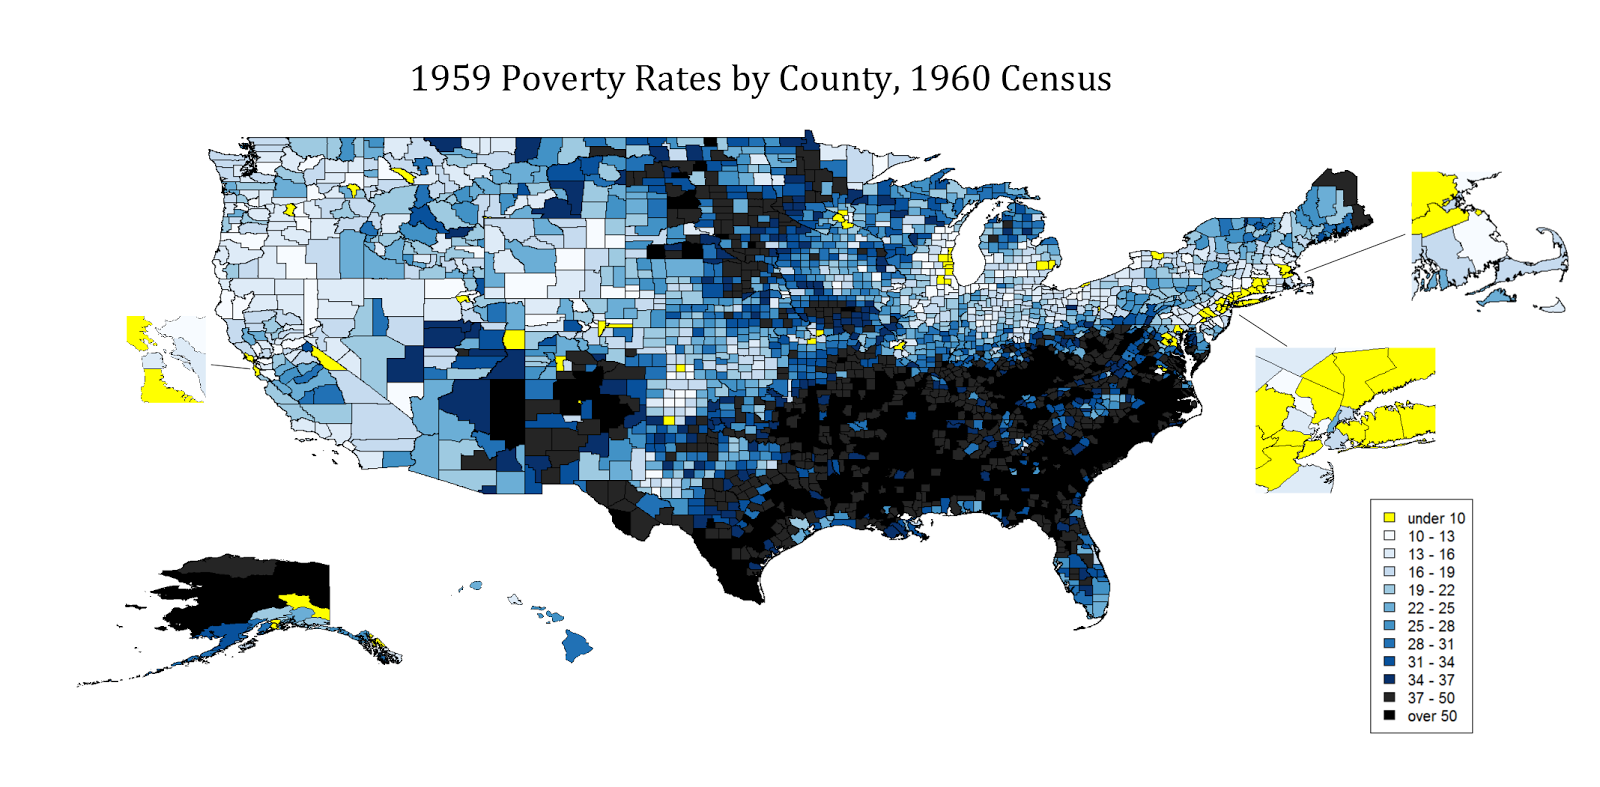 Xenocrypt's Site.: County-Level Poverty Rates in the 1959 ... on interstate 25 map, texas map, interstate 422 map, interstate 8 map, interstate i-10, highway 82 map, interstate 421 map, interstate 70 map, interstate 20 map, interstate 27 map, interstate 4 map, i-10 map, interstate 80 map, interstate 81 map, interstate 75 map, interstate 5 map, i-70 colorado road map, lincoln way map,